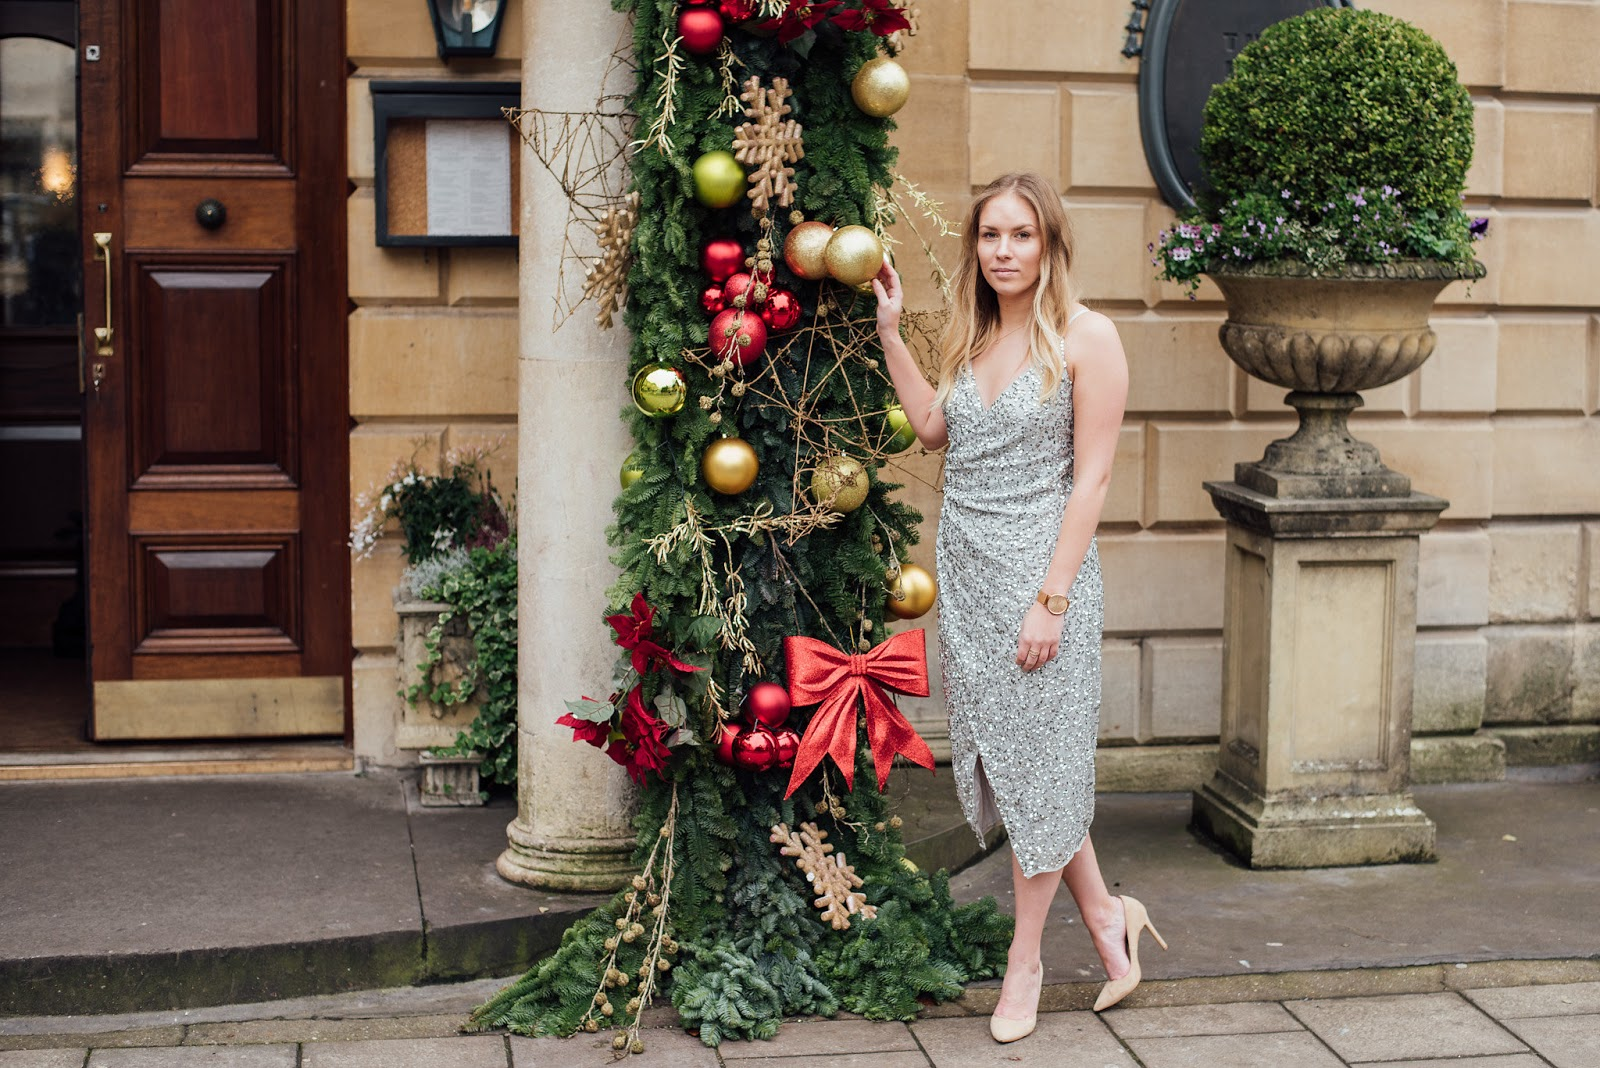 Fashion | The Only Dress You Need For The Christmas Party Season Silver Sequin ASOS Drape Dress outside the Ivy Brasserie Bristol with Christmas Decorations